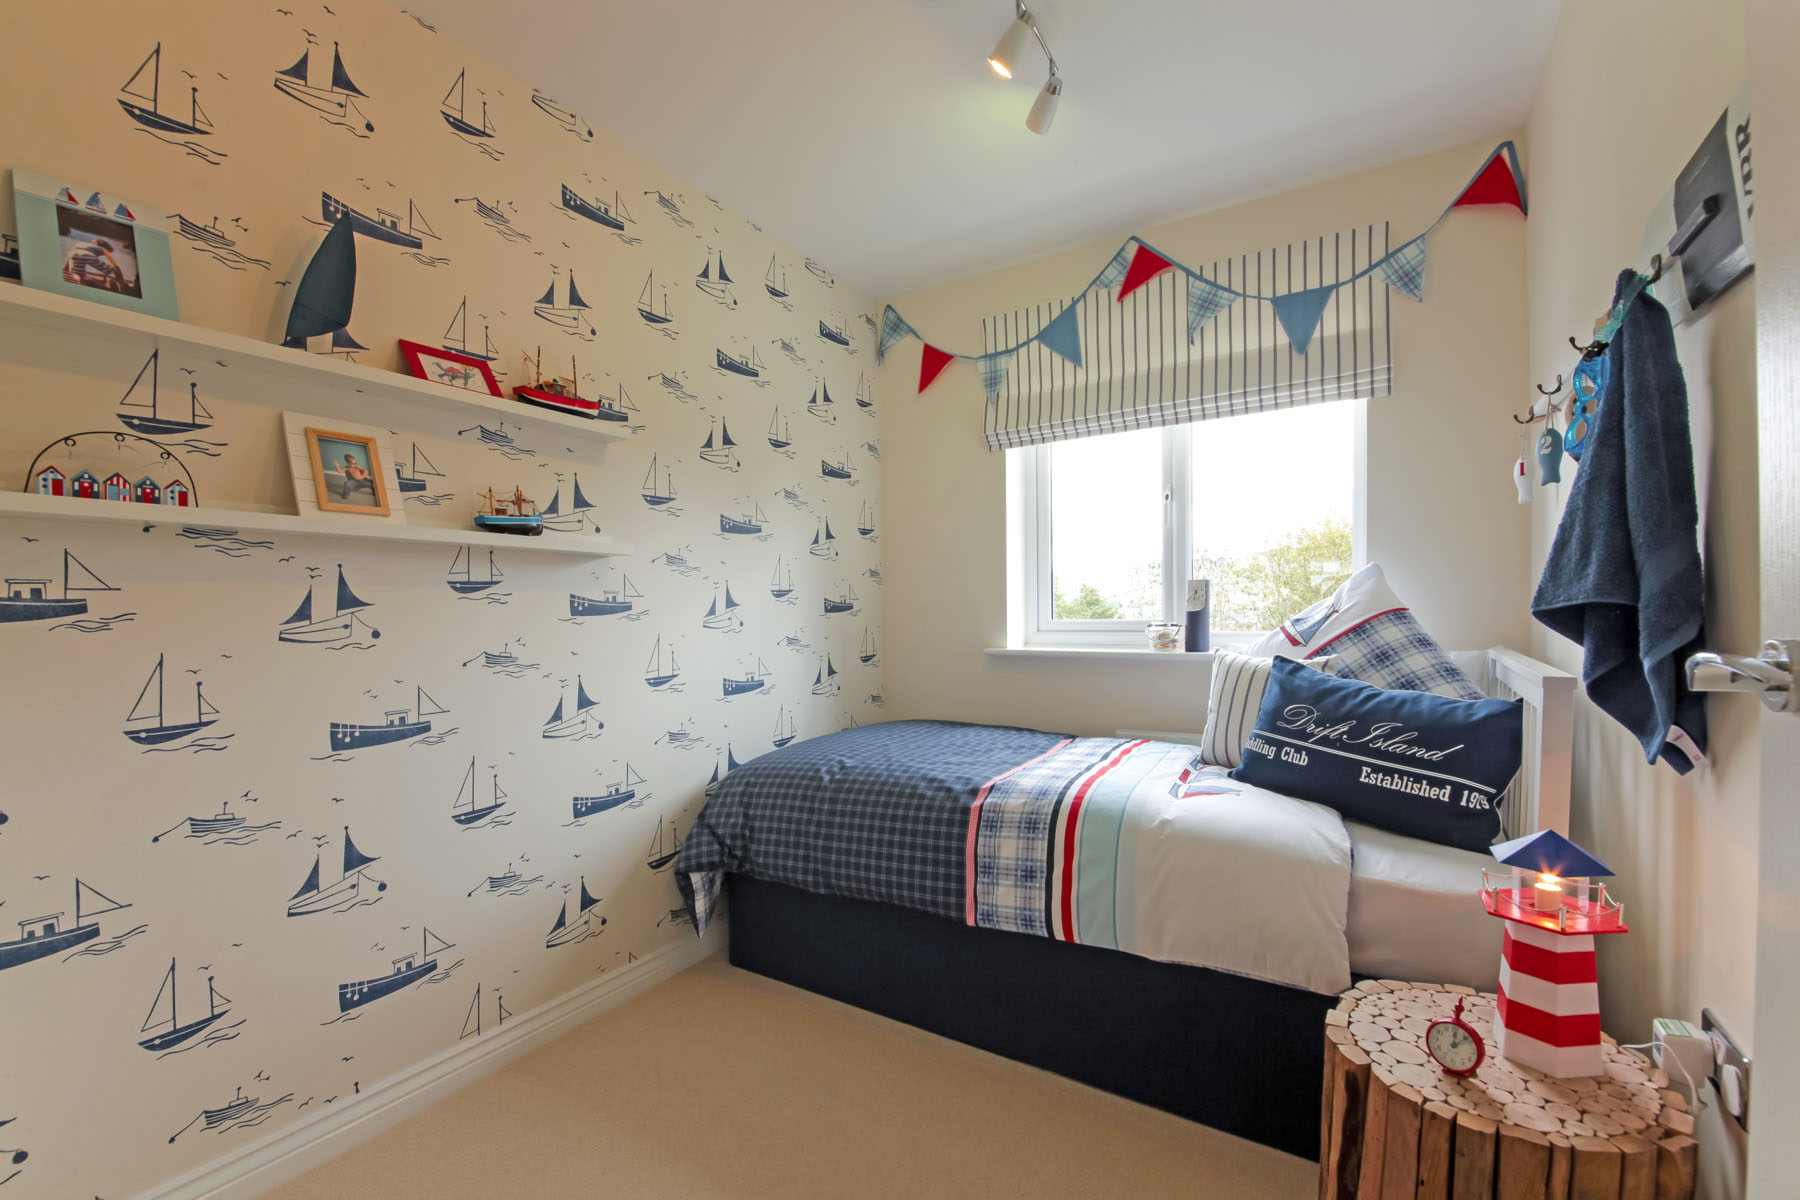 020_DMV_Lydford_Bedroom_3